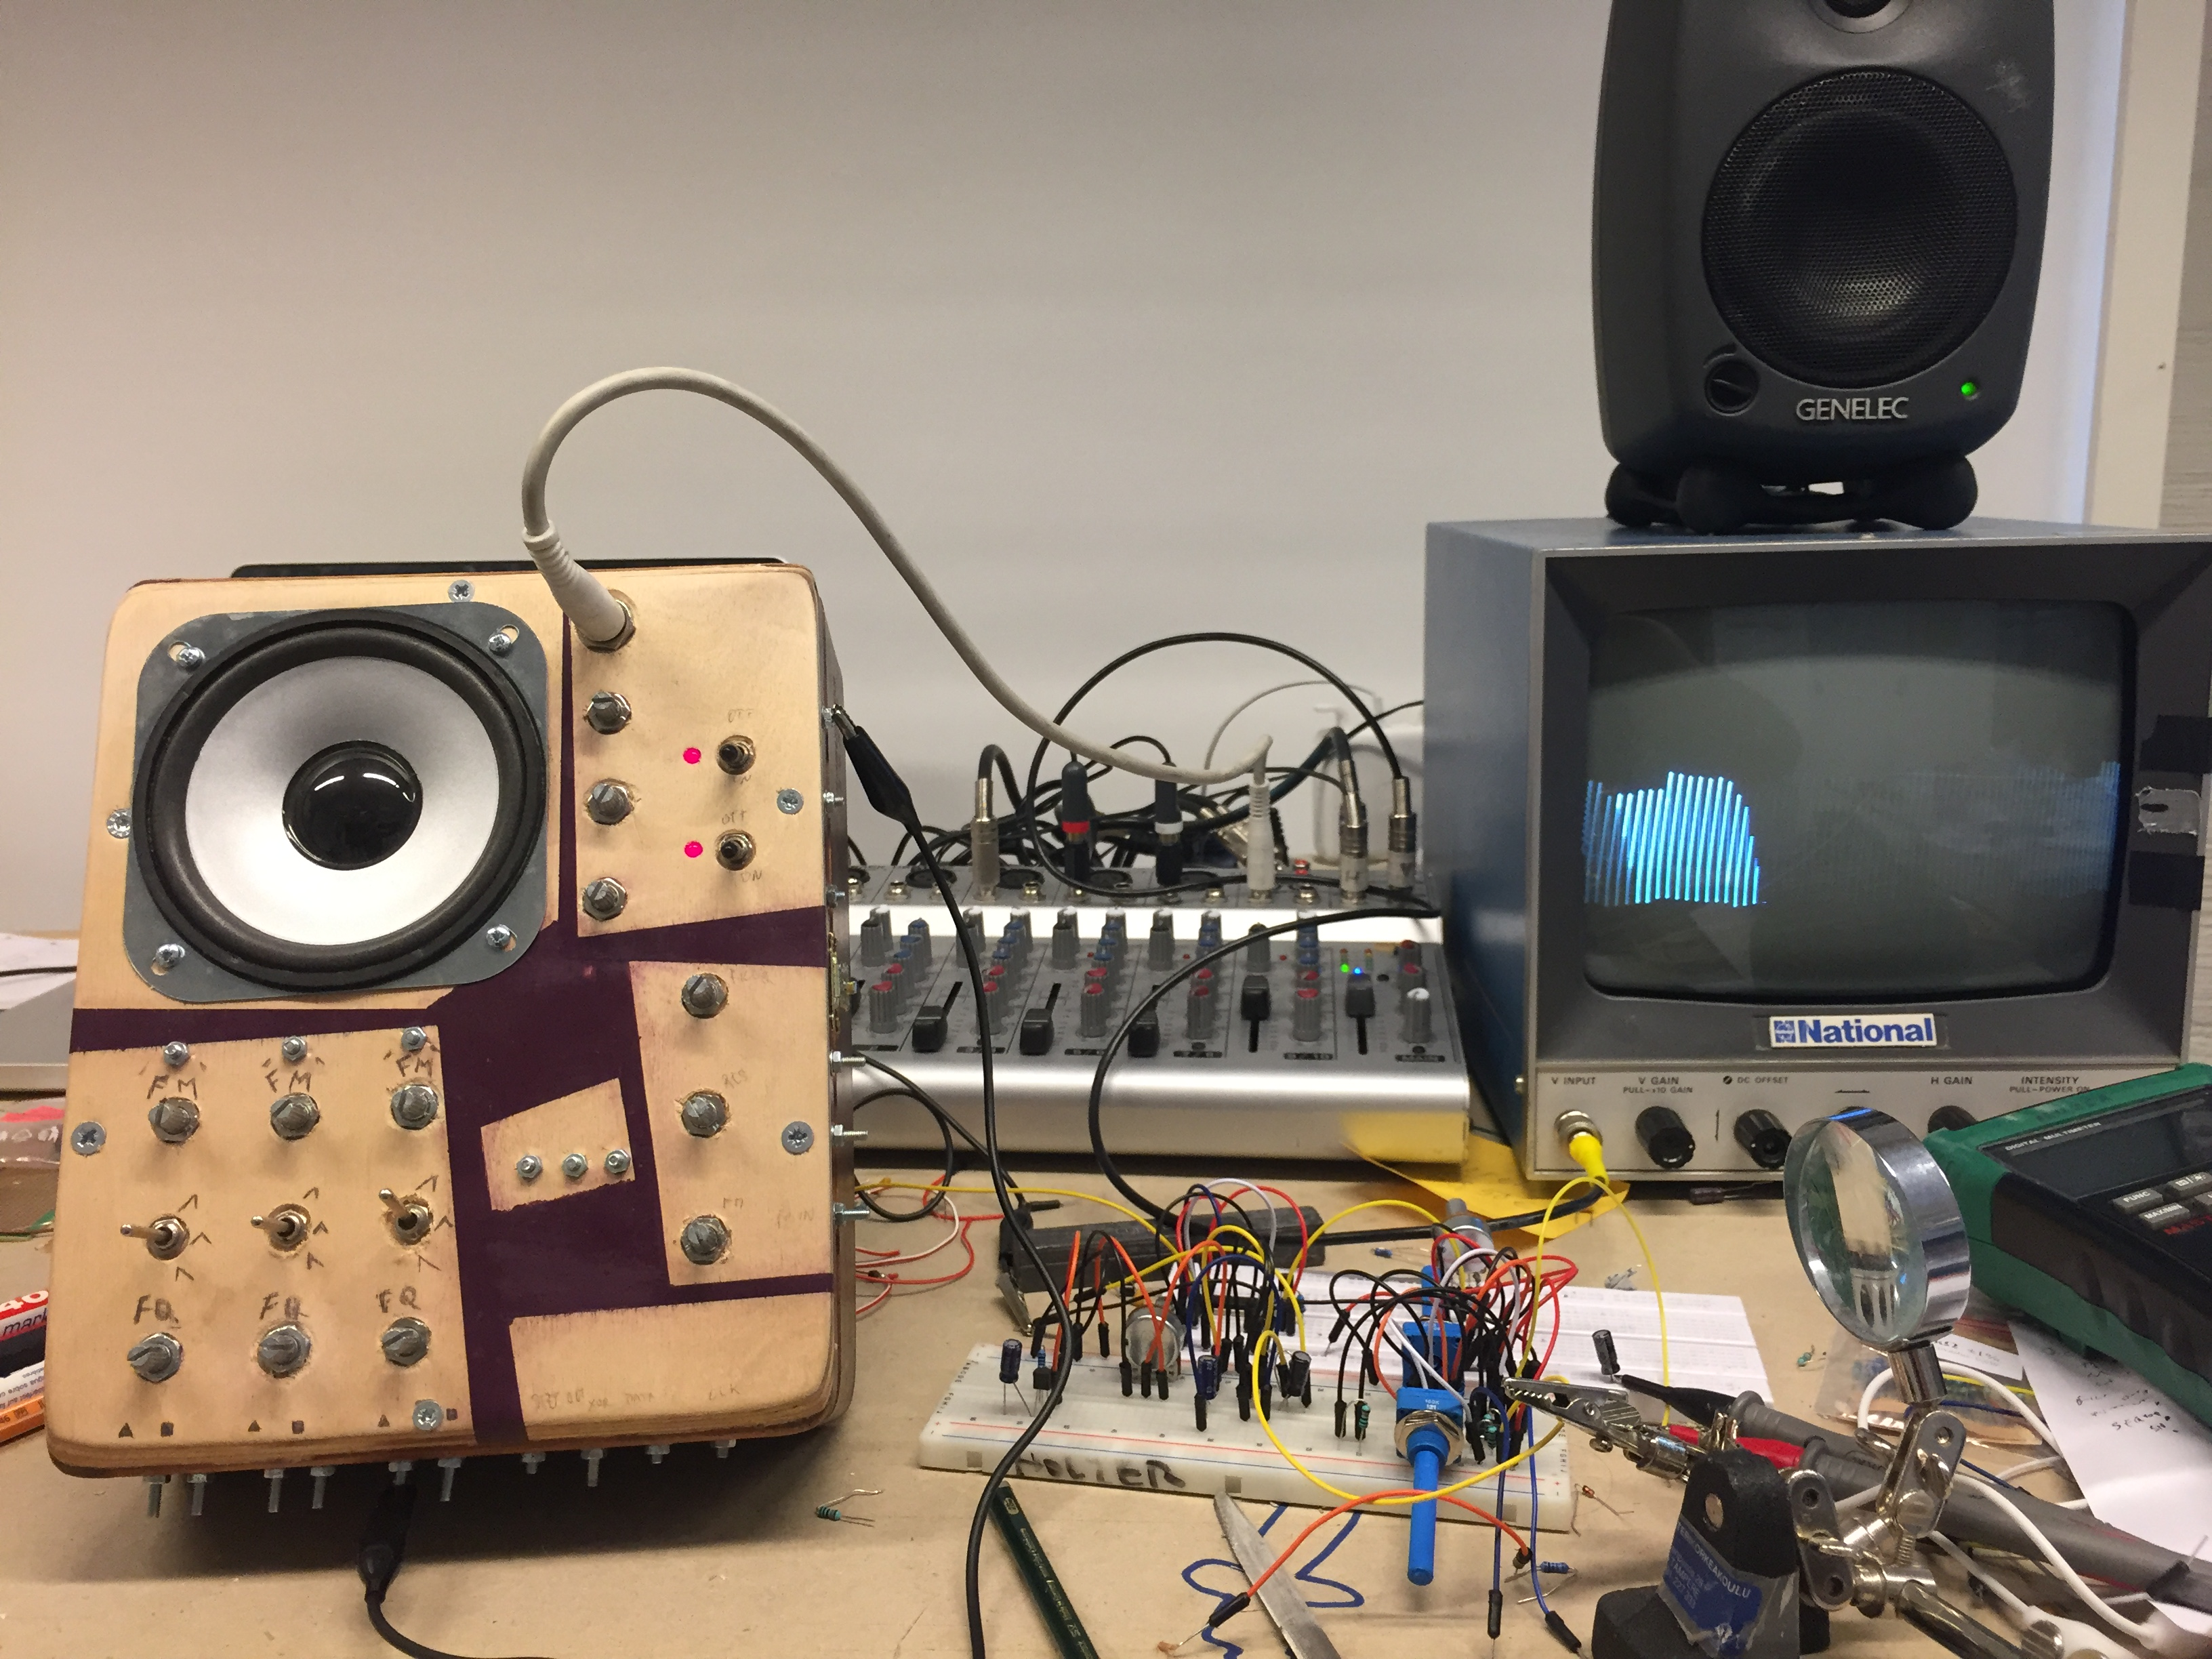 Experimental Sound Instruments Build Electronic Circuits Blog This Is A Workshop Which I Mainly Teach Annually At The Media Lab Of Aalto University Espoo Fi Have Also Taught It Different Schools And Programs In